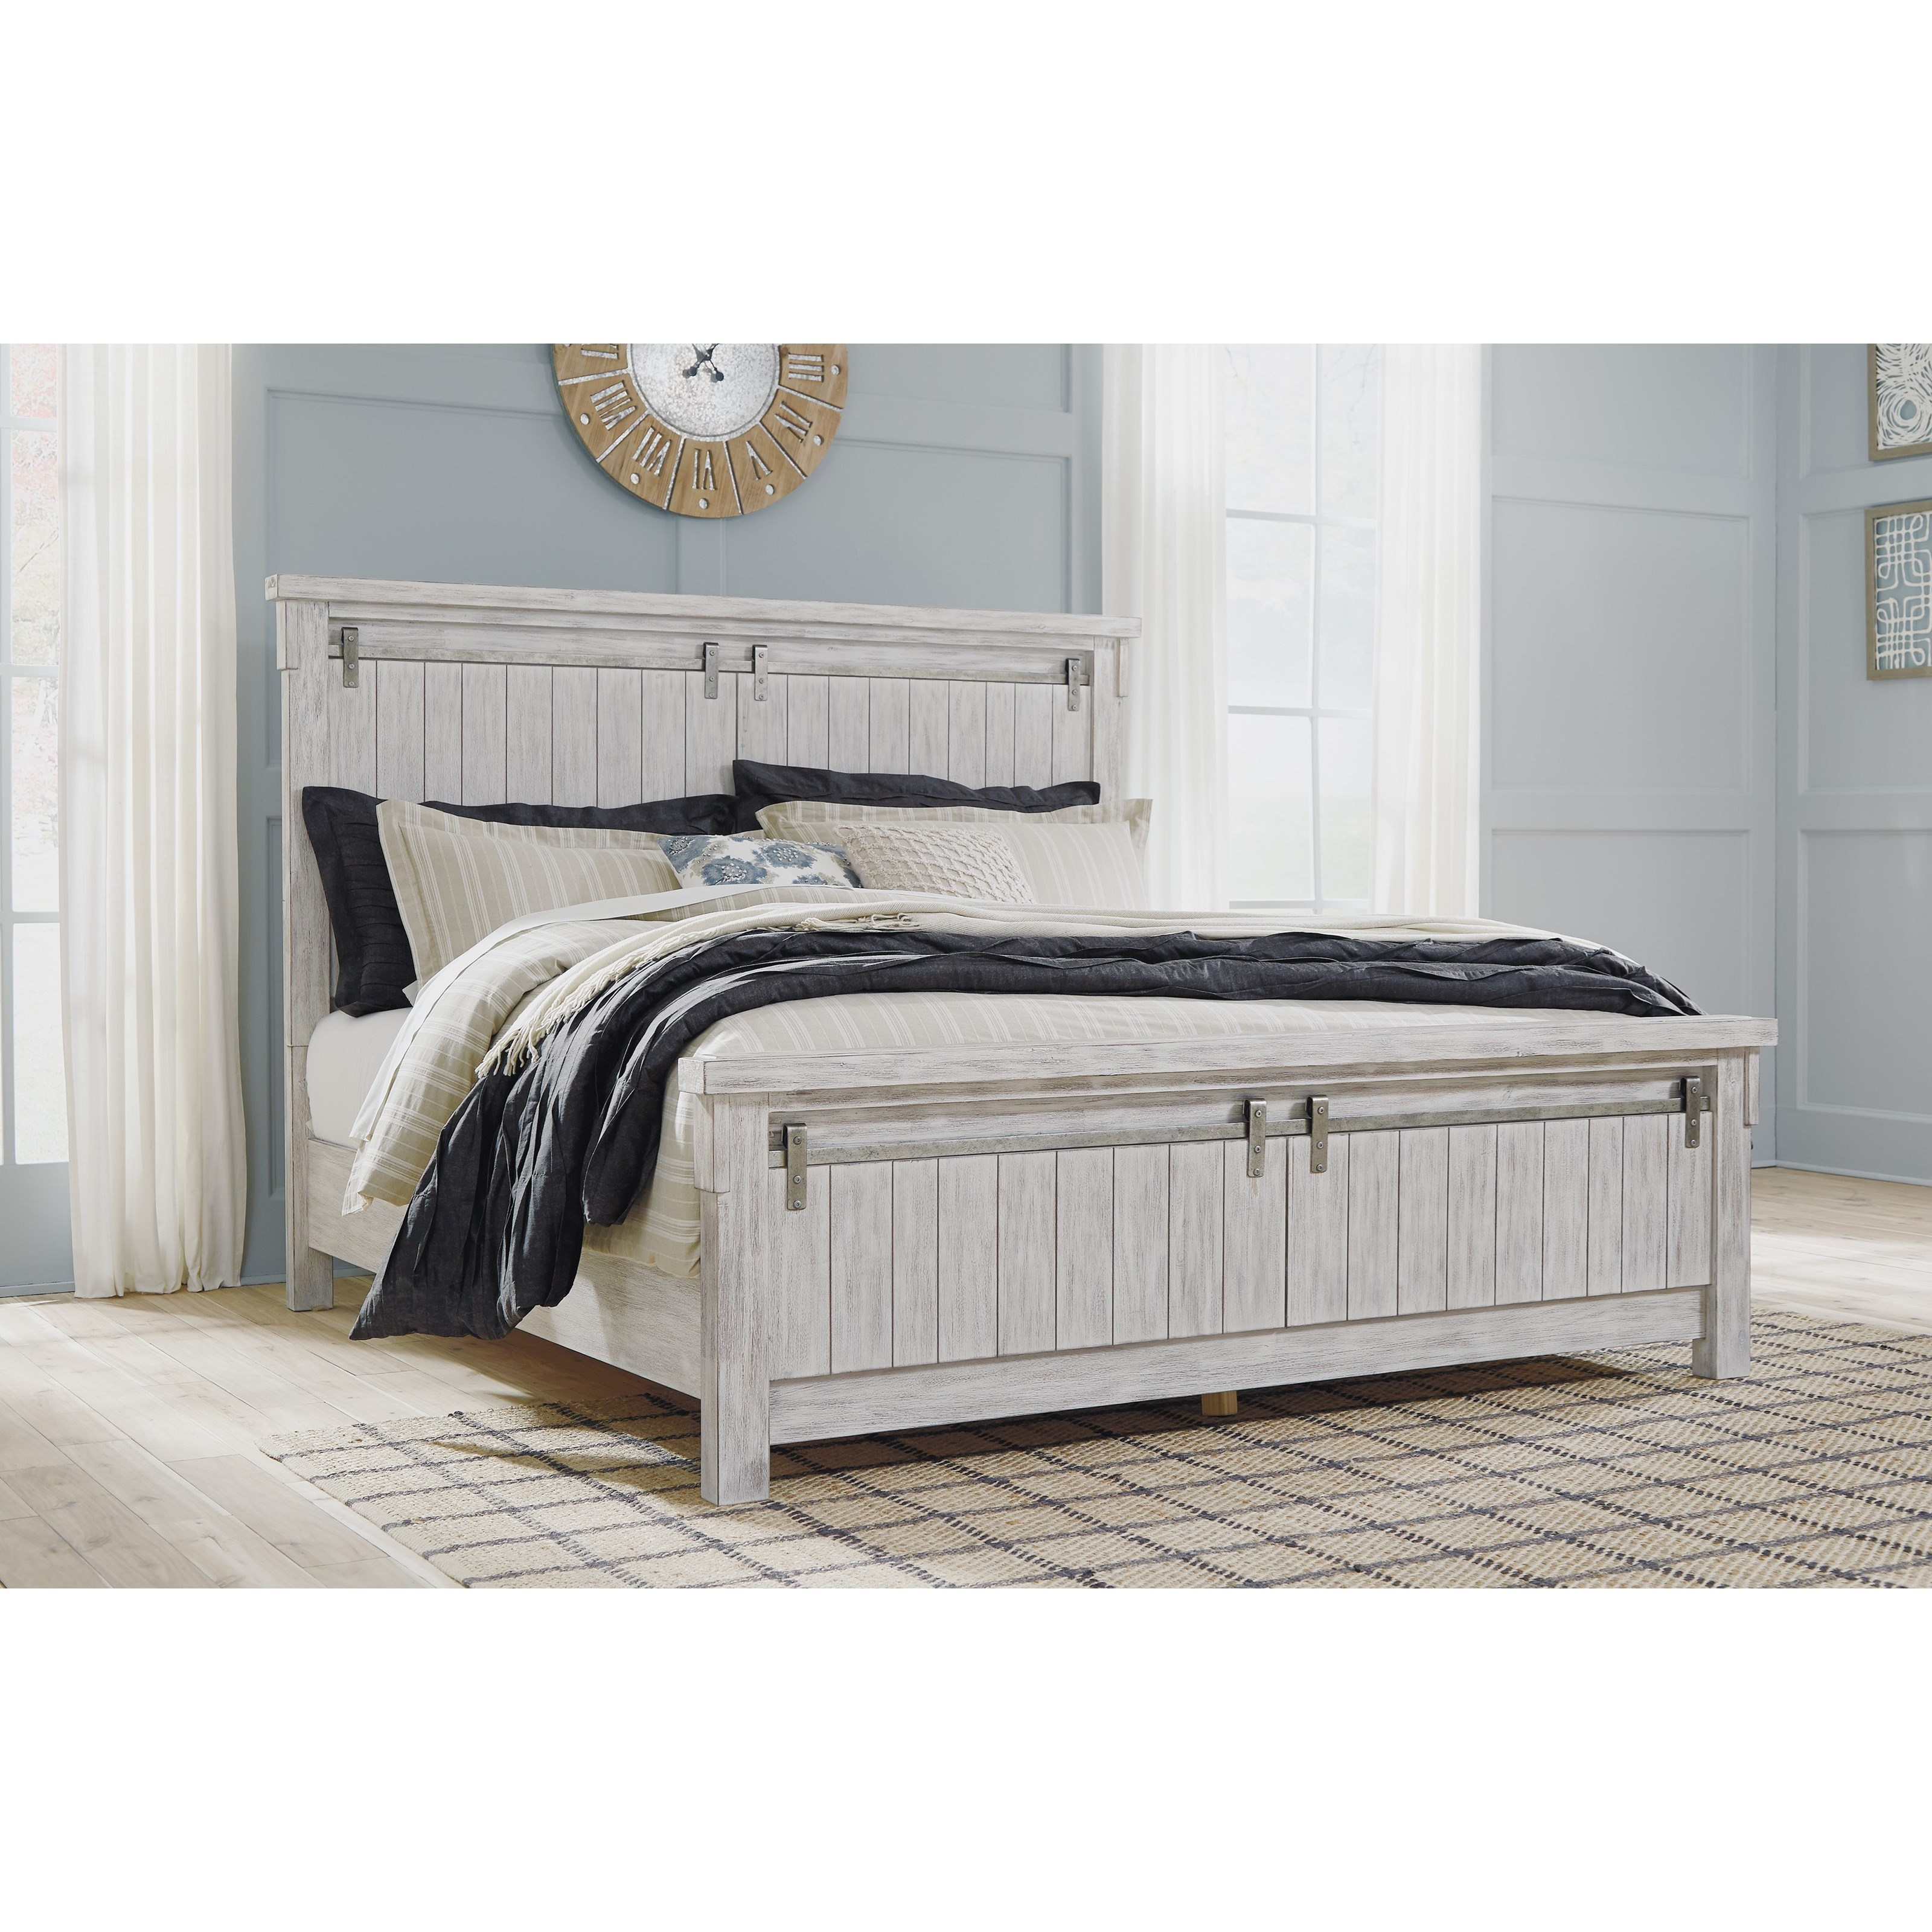 Brashland California King Panel Bed by Signature Design by Ashley at Sparks HomeStore